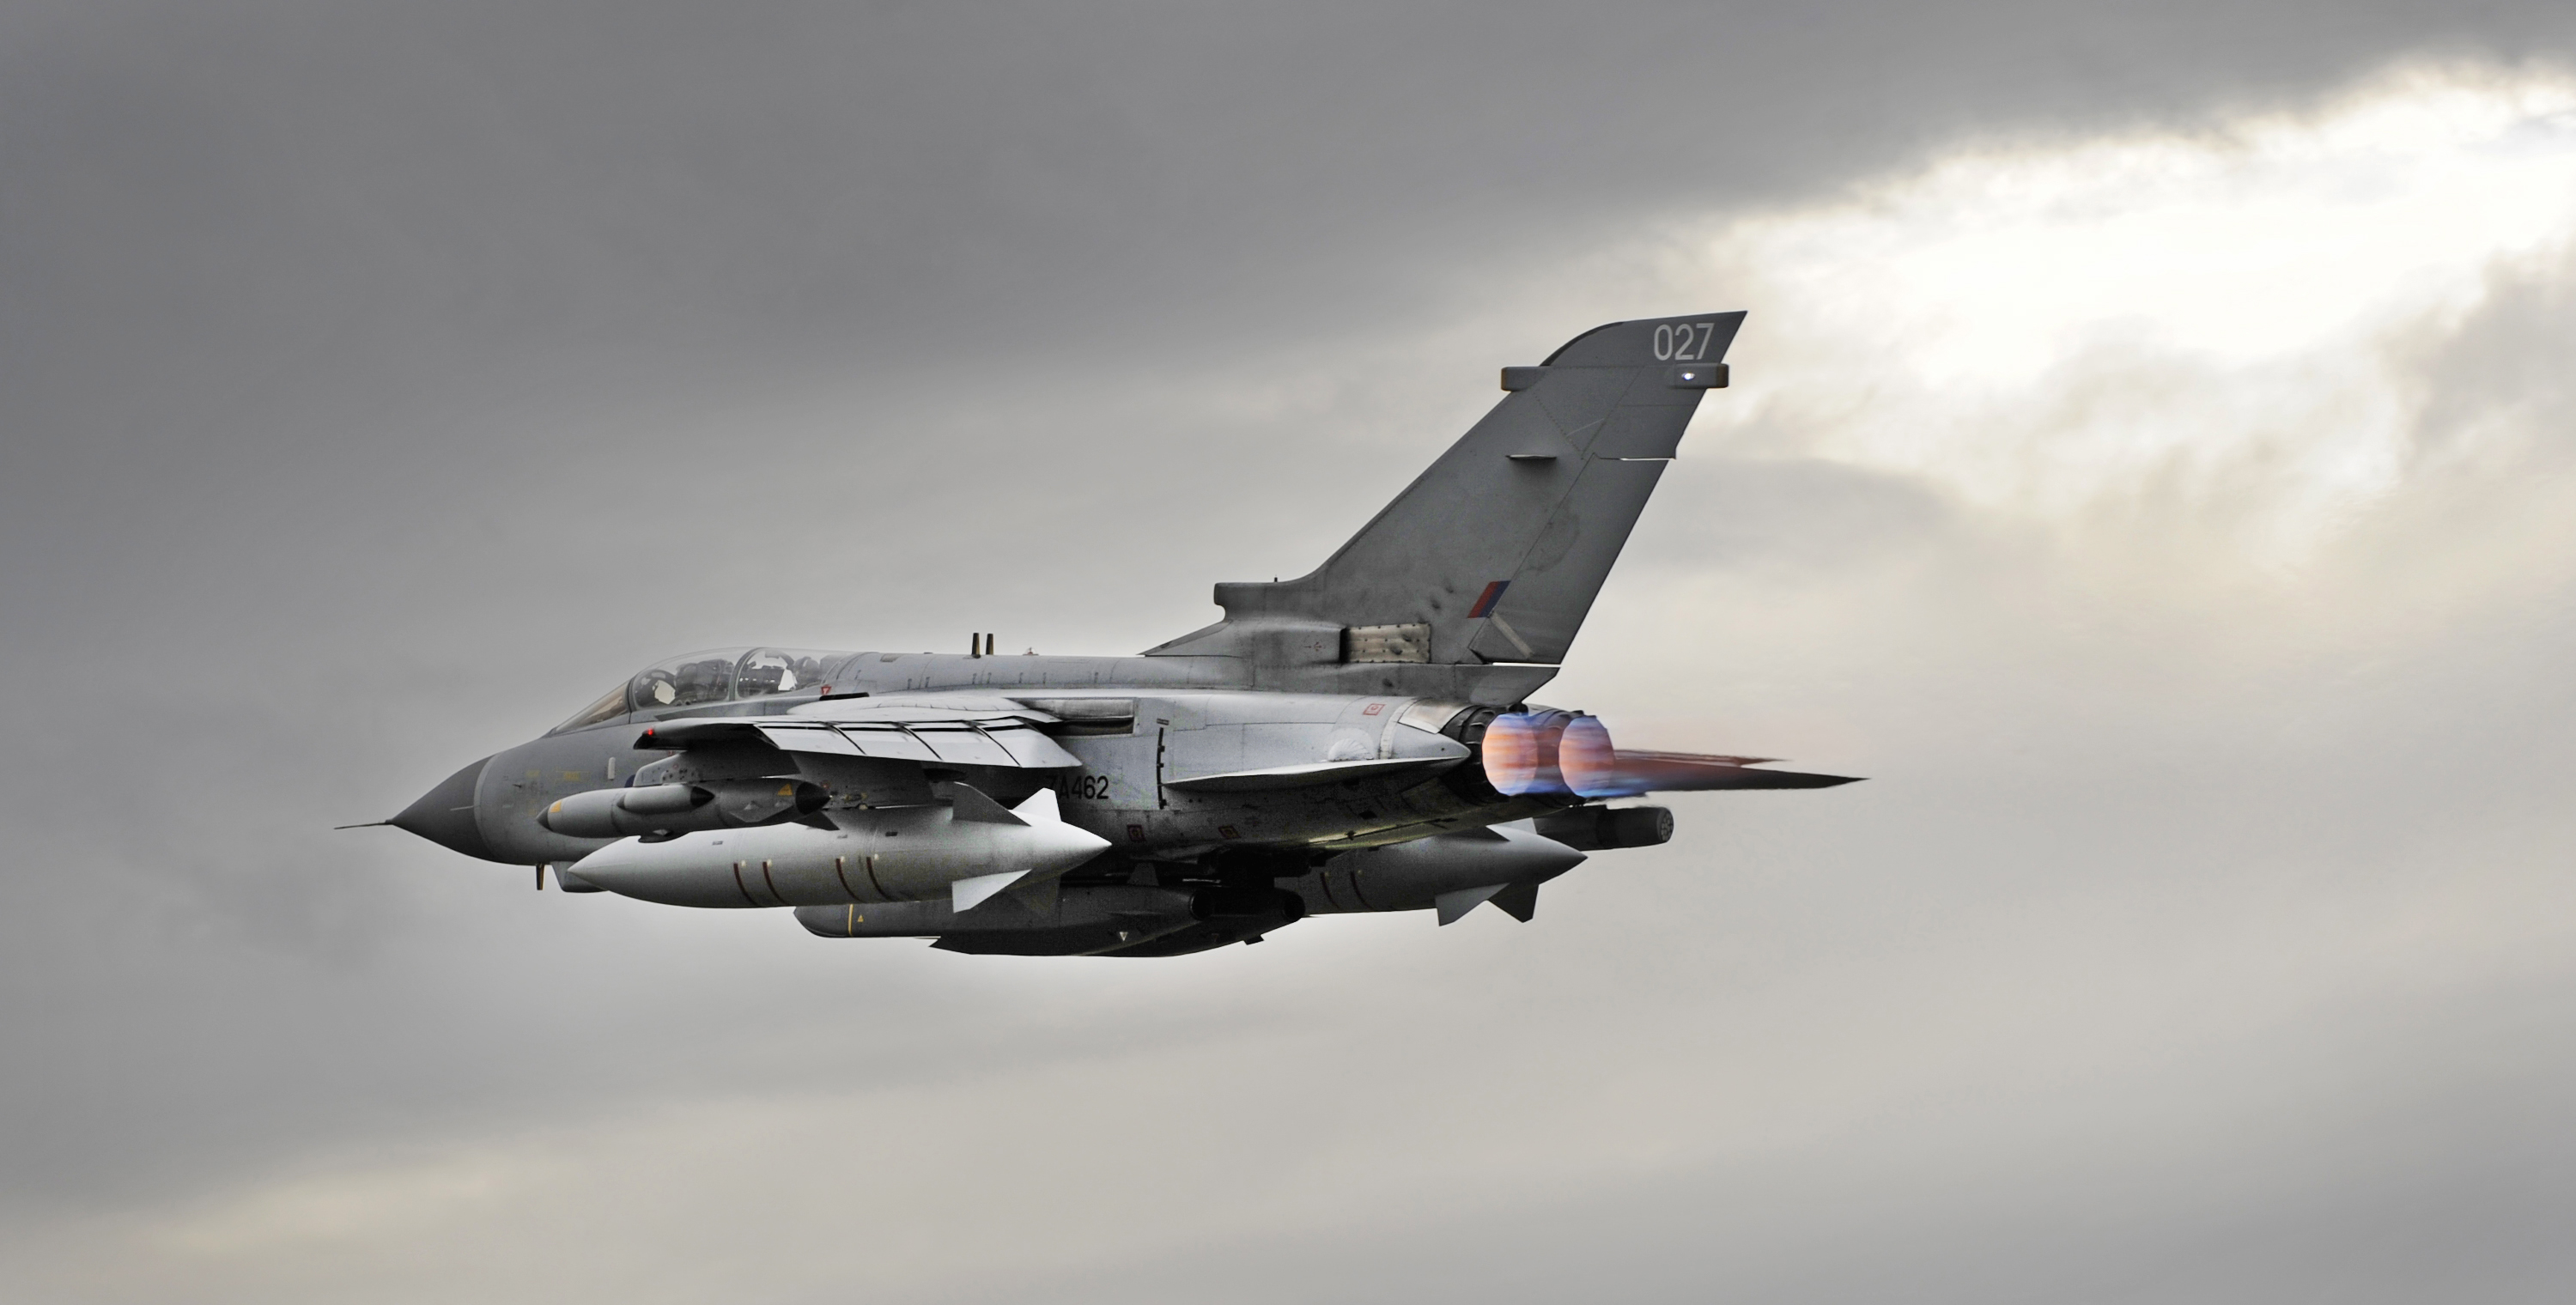 Royal Air Force Tornado GR4 aircraft leaves RAF Marham for operations overseas.